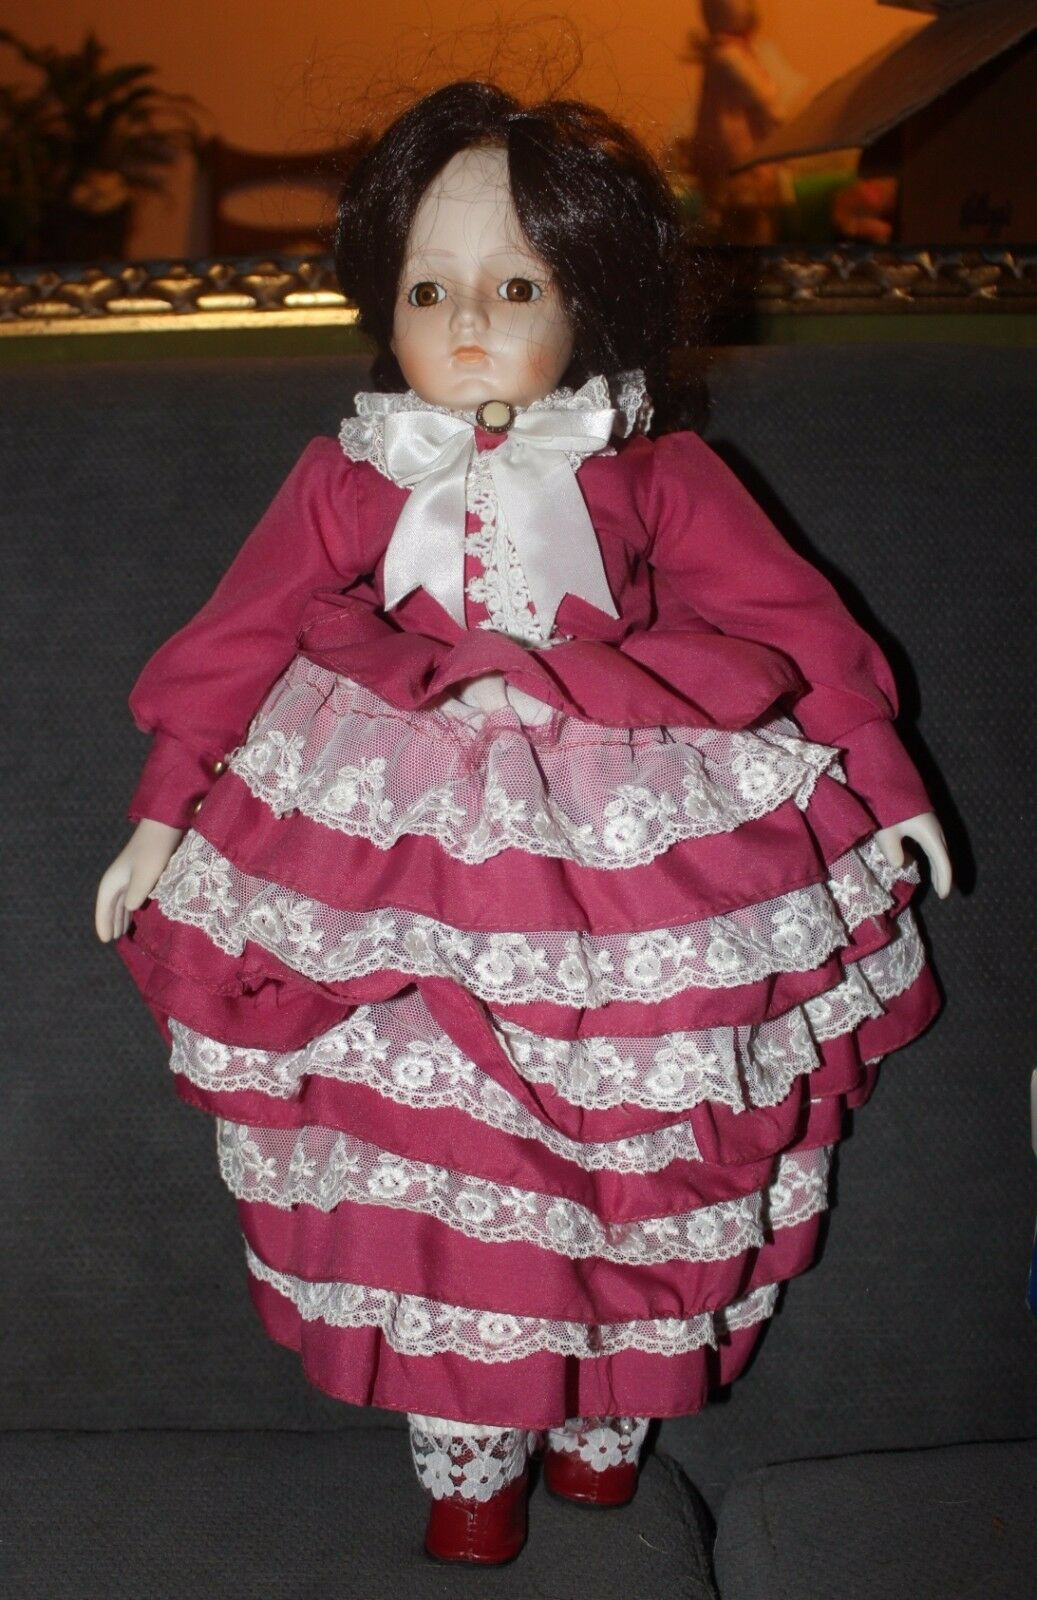 Marrone Hairosso & marrone Glass Eyes Porcelain & Cloth Doll Musical Unmarked 18